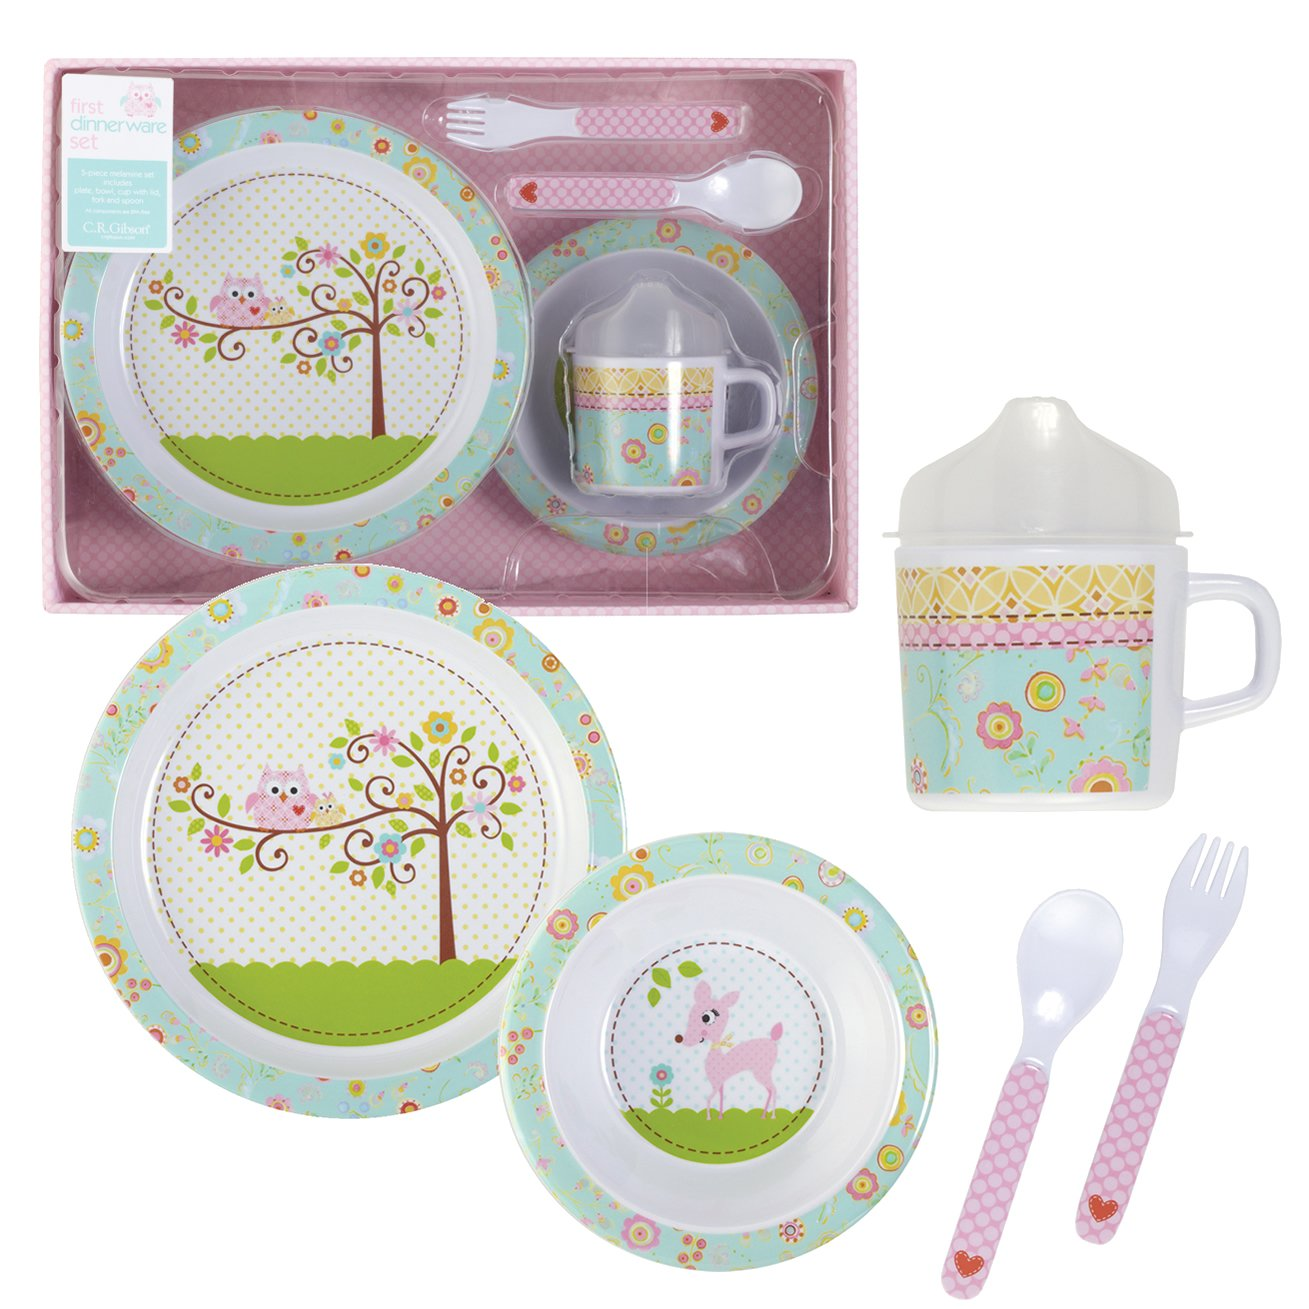 Amazon.com  C.R. Gibson 5 Piece Kids Dinnerware Set FDA Approved Melamine BPA Free Dishwasher Safe- Happi Baby Girl  Kid Plates Melamine  Baby  sc 1 st  Amazon.com & Amazon.com : C.R. Gibson 5 Piece Kids Dinnerware Set FDA Approved ...